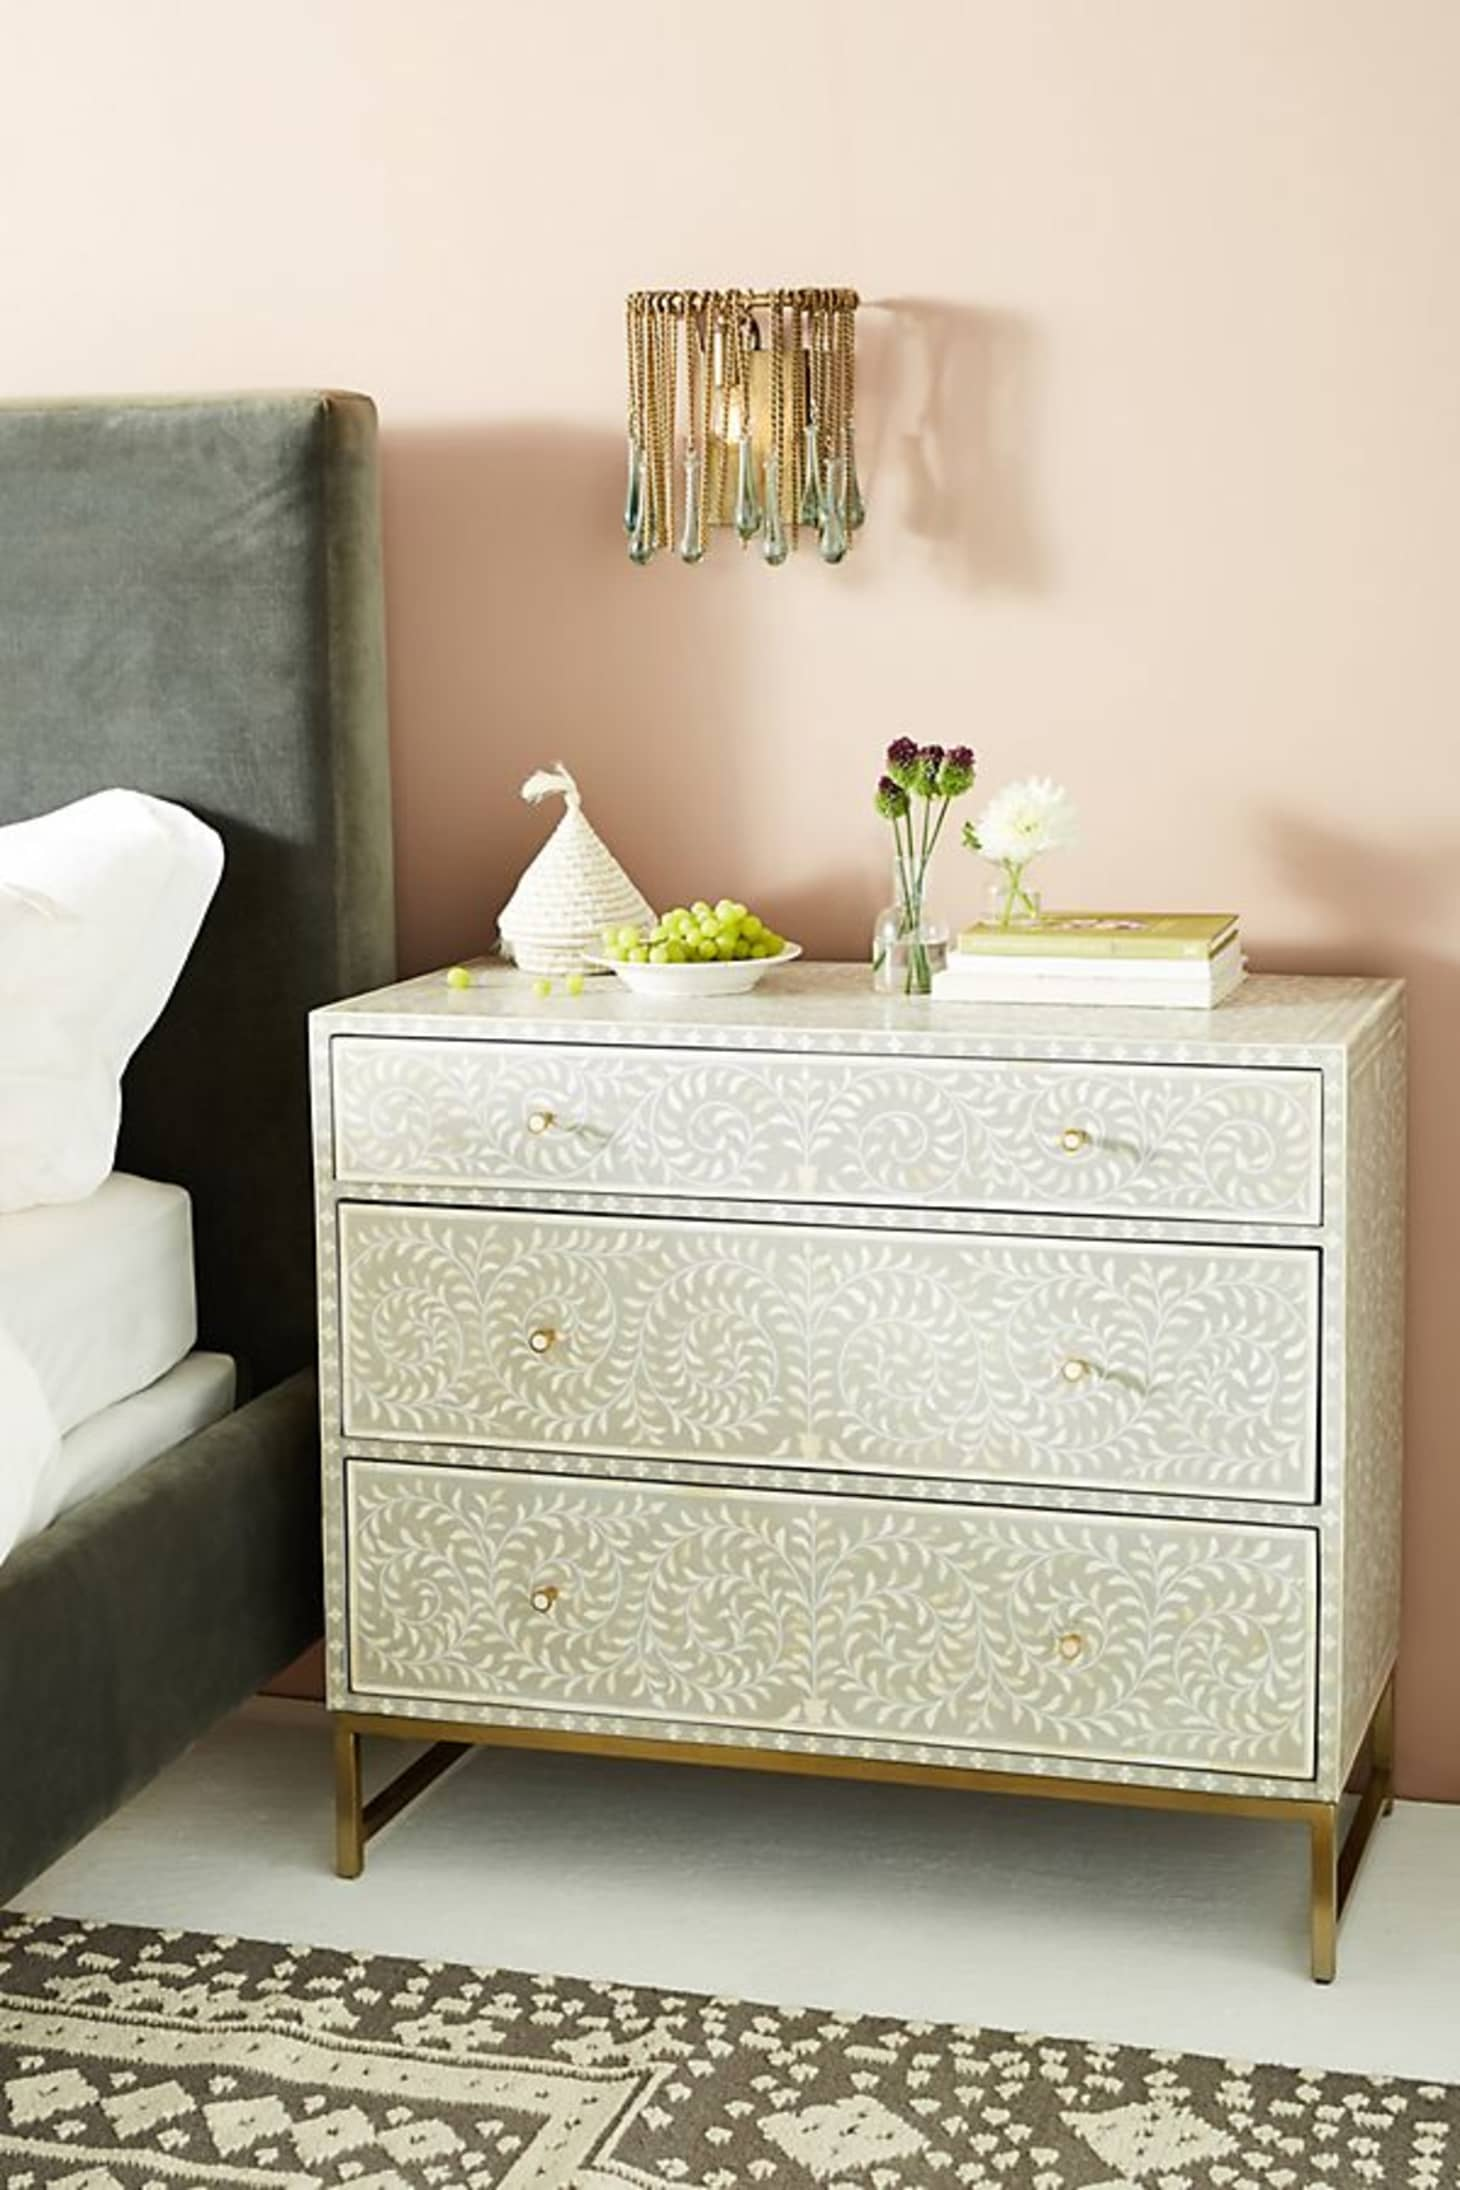 Bone Inlay Budget Diy Furniture Projects Apartment Therapy